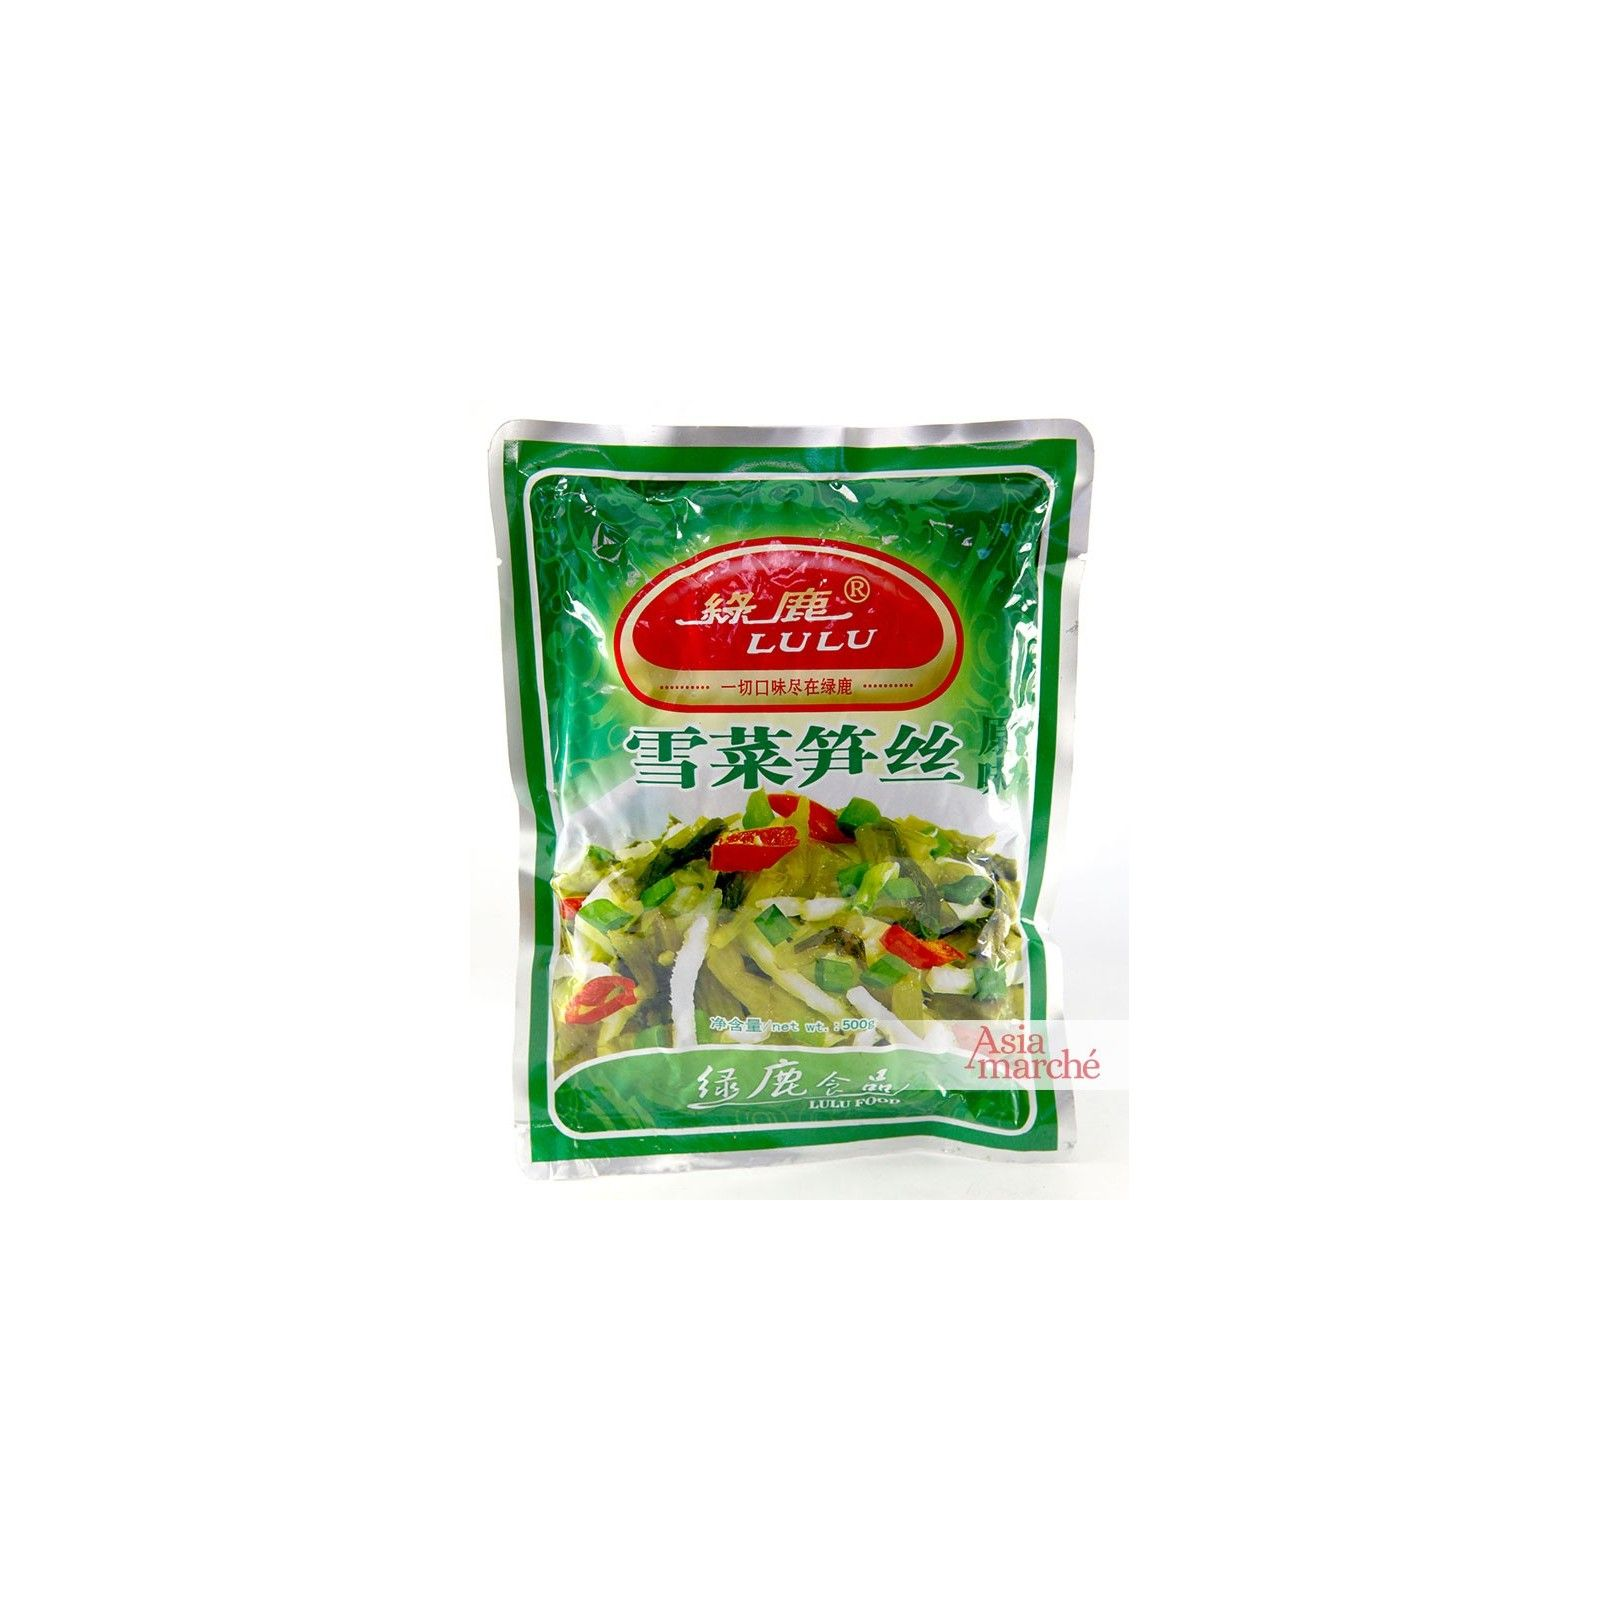 pickle asiatique 142299